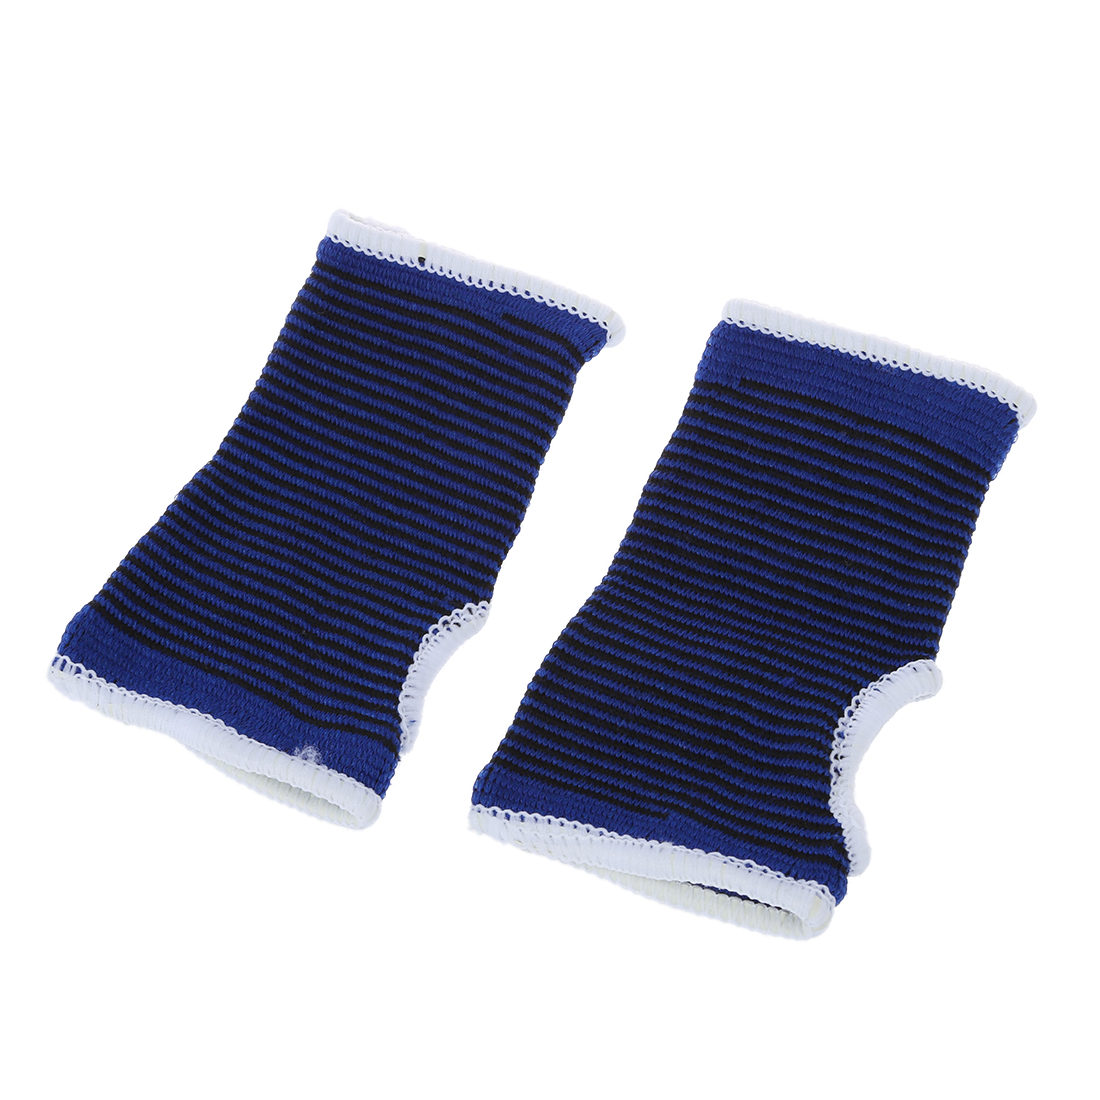 New Sale Pairs Blue Black Elastic Wrist Palm Support Protecting Brace